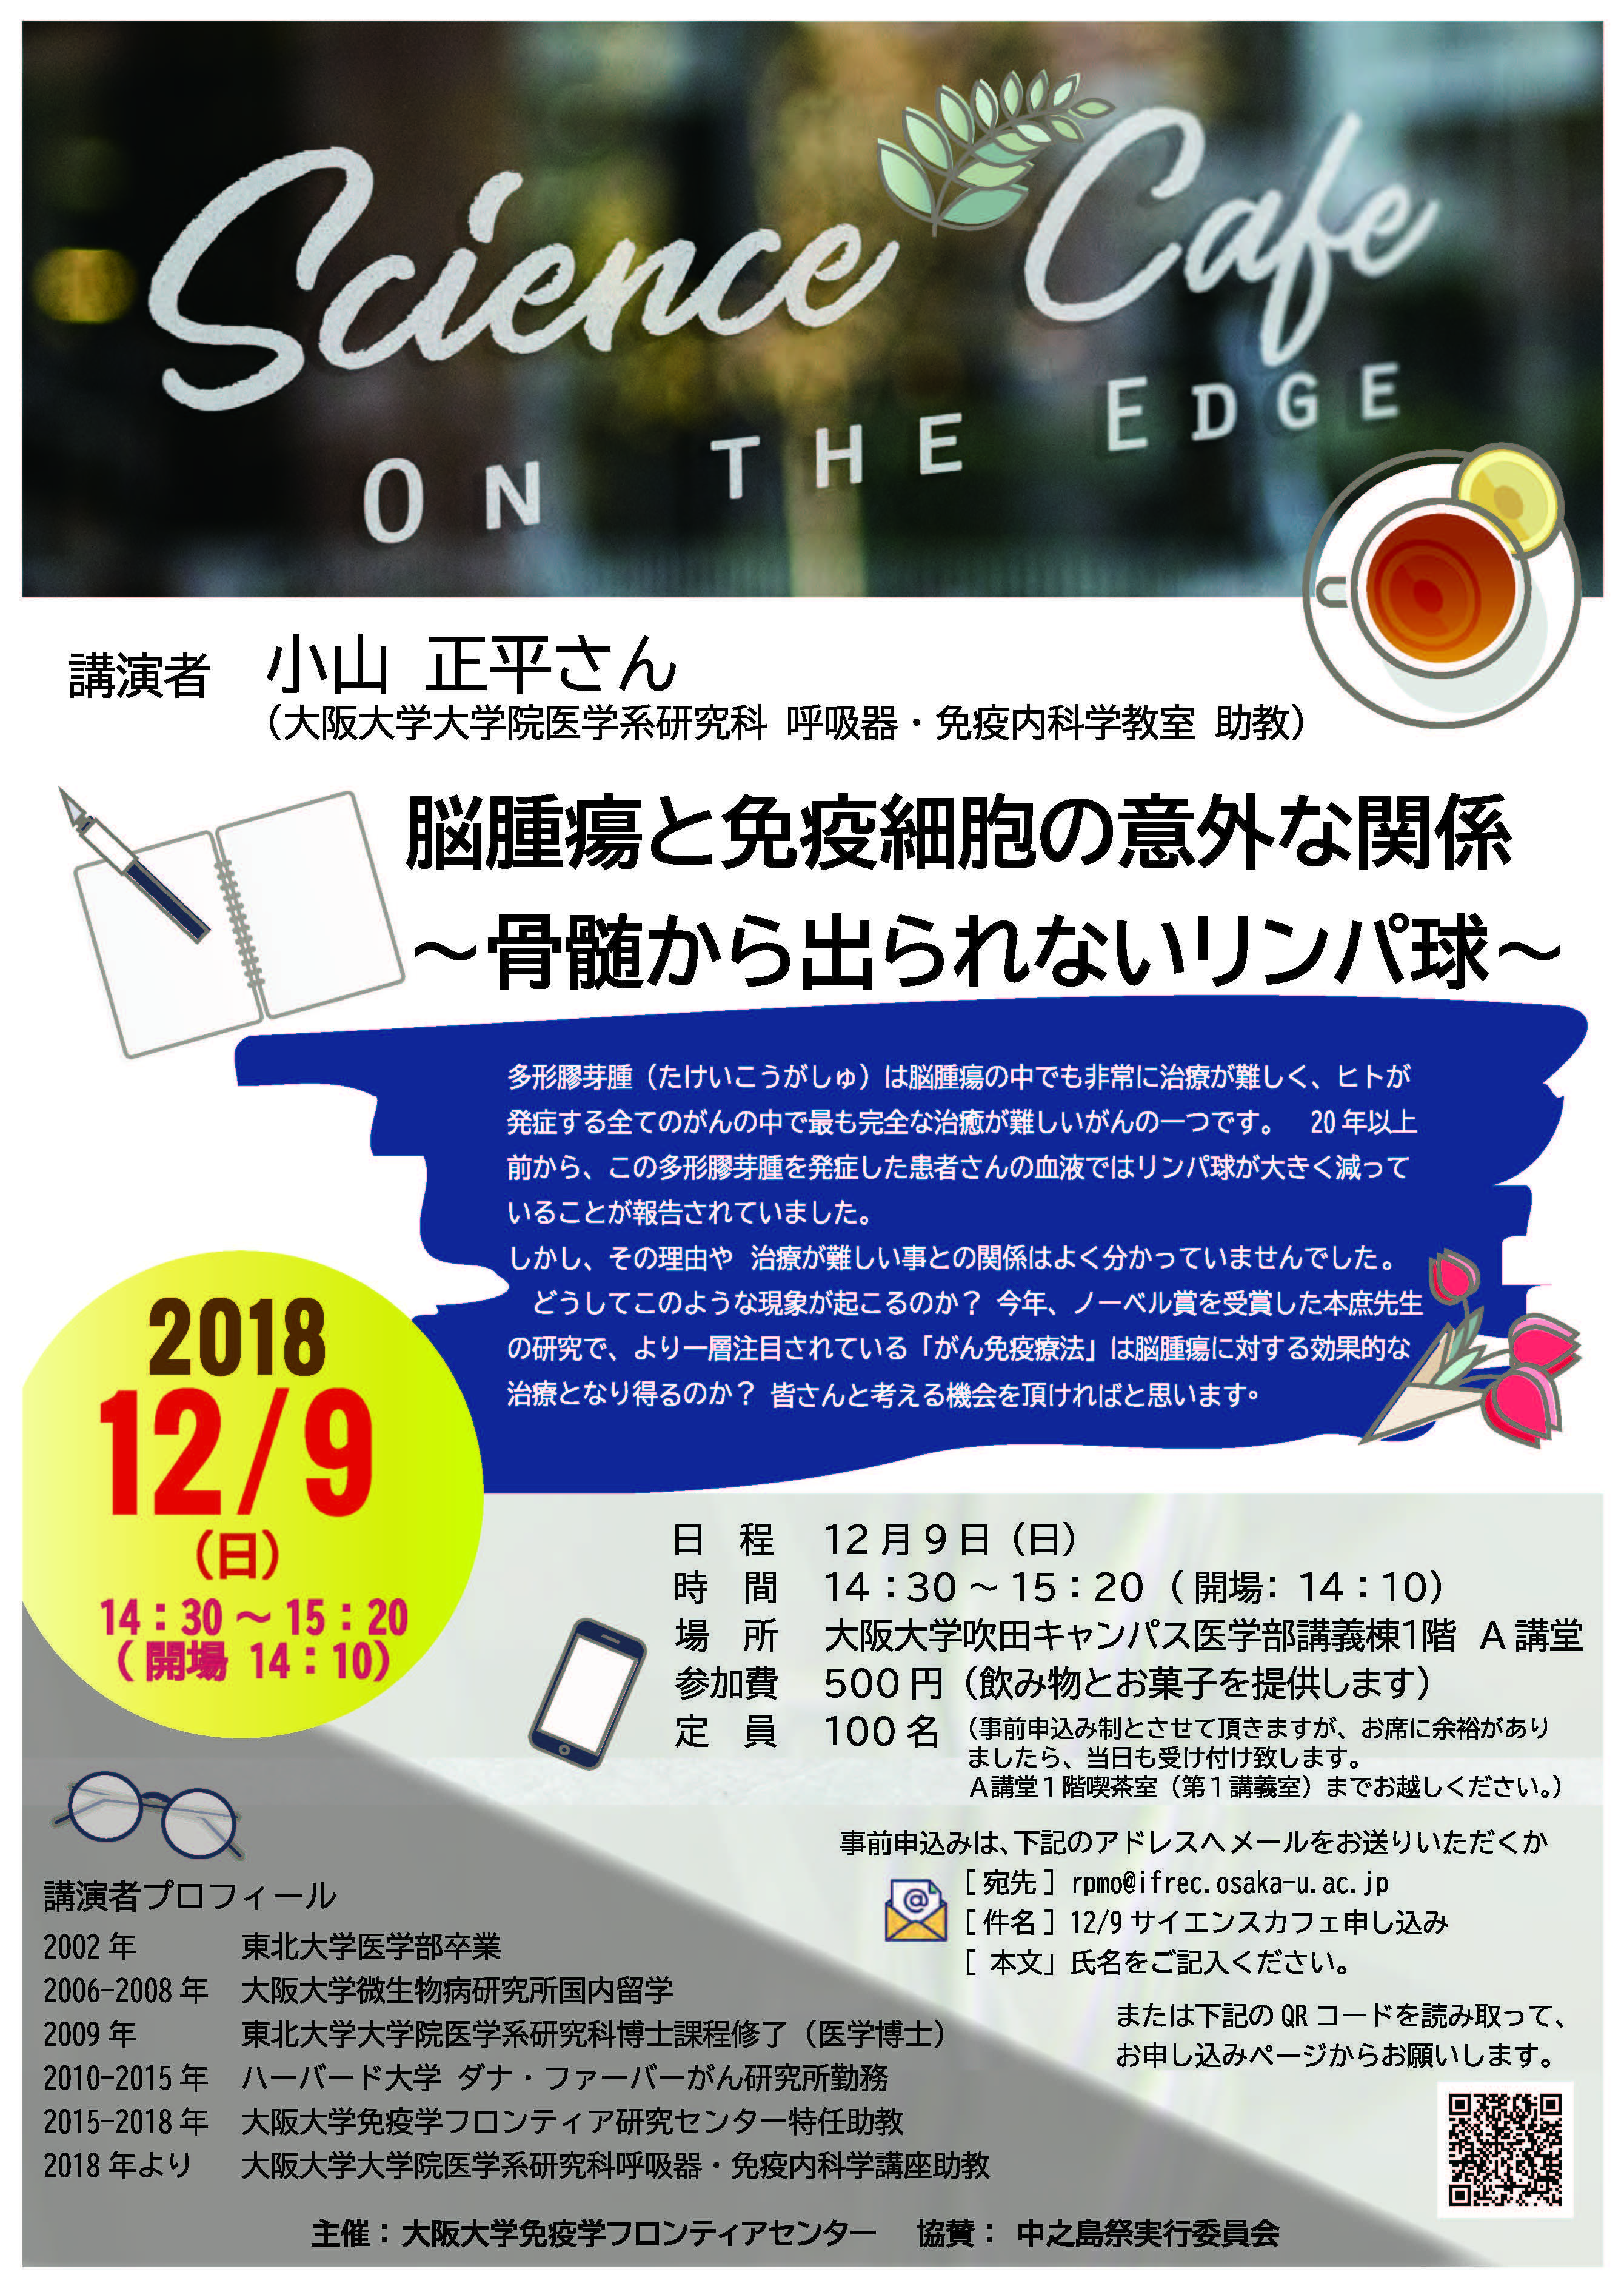 Science Cafe on the Edge